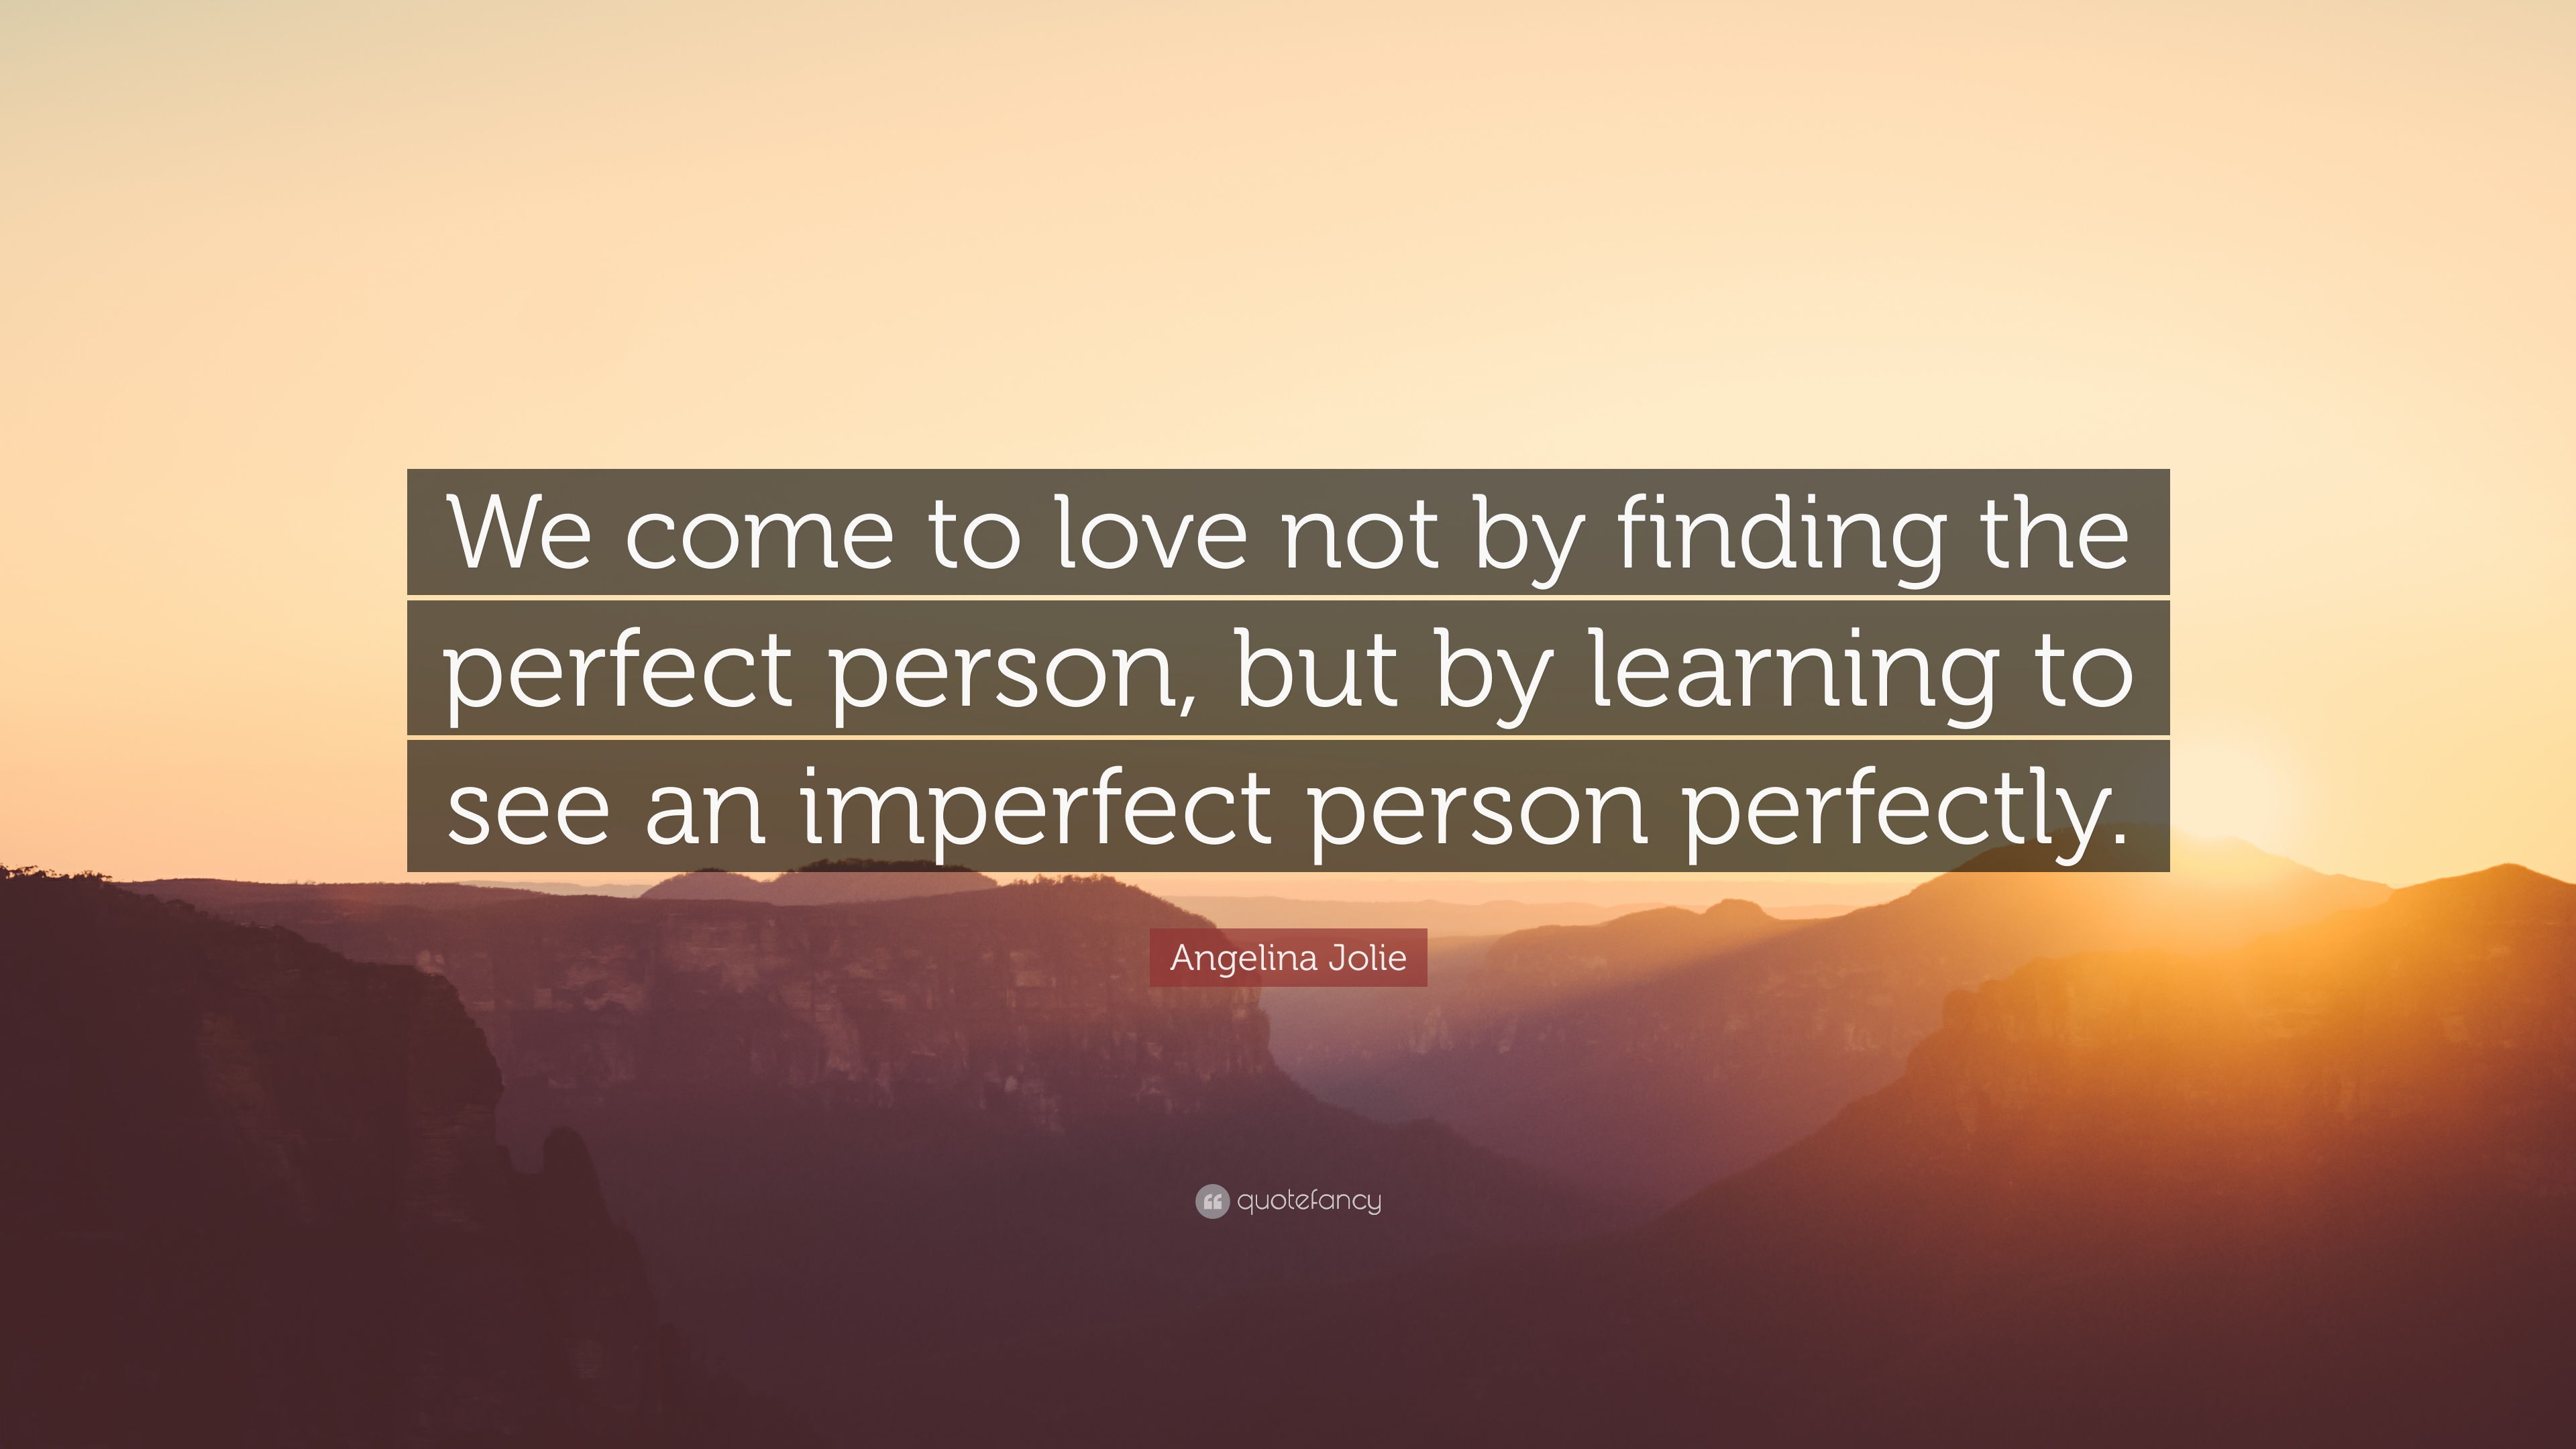 Finding the perfect person